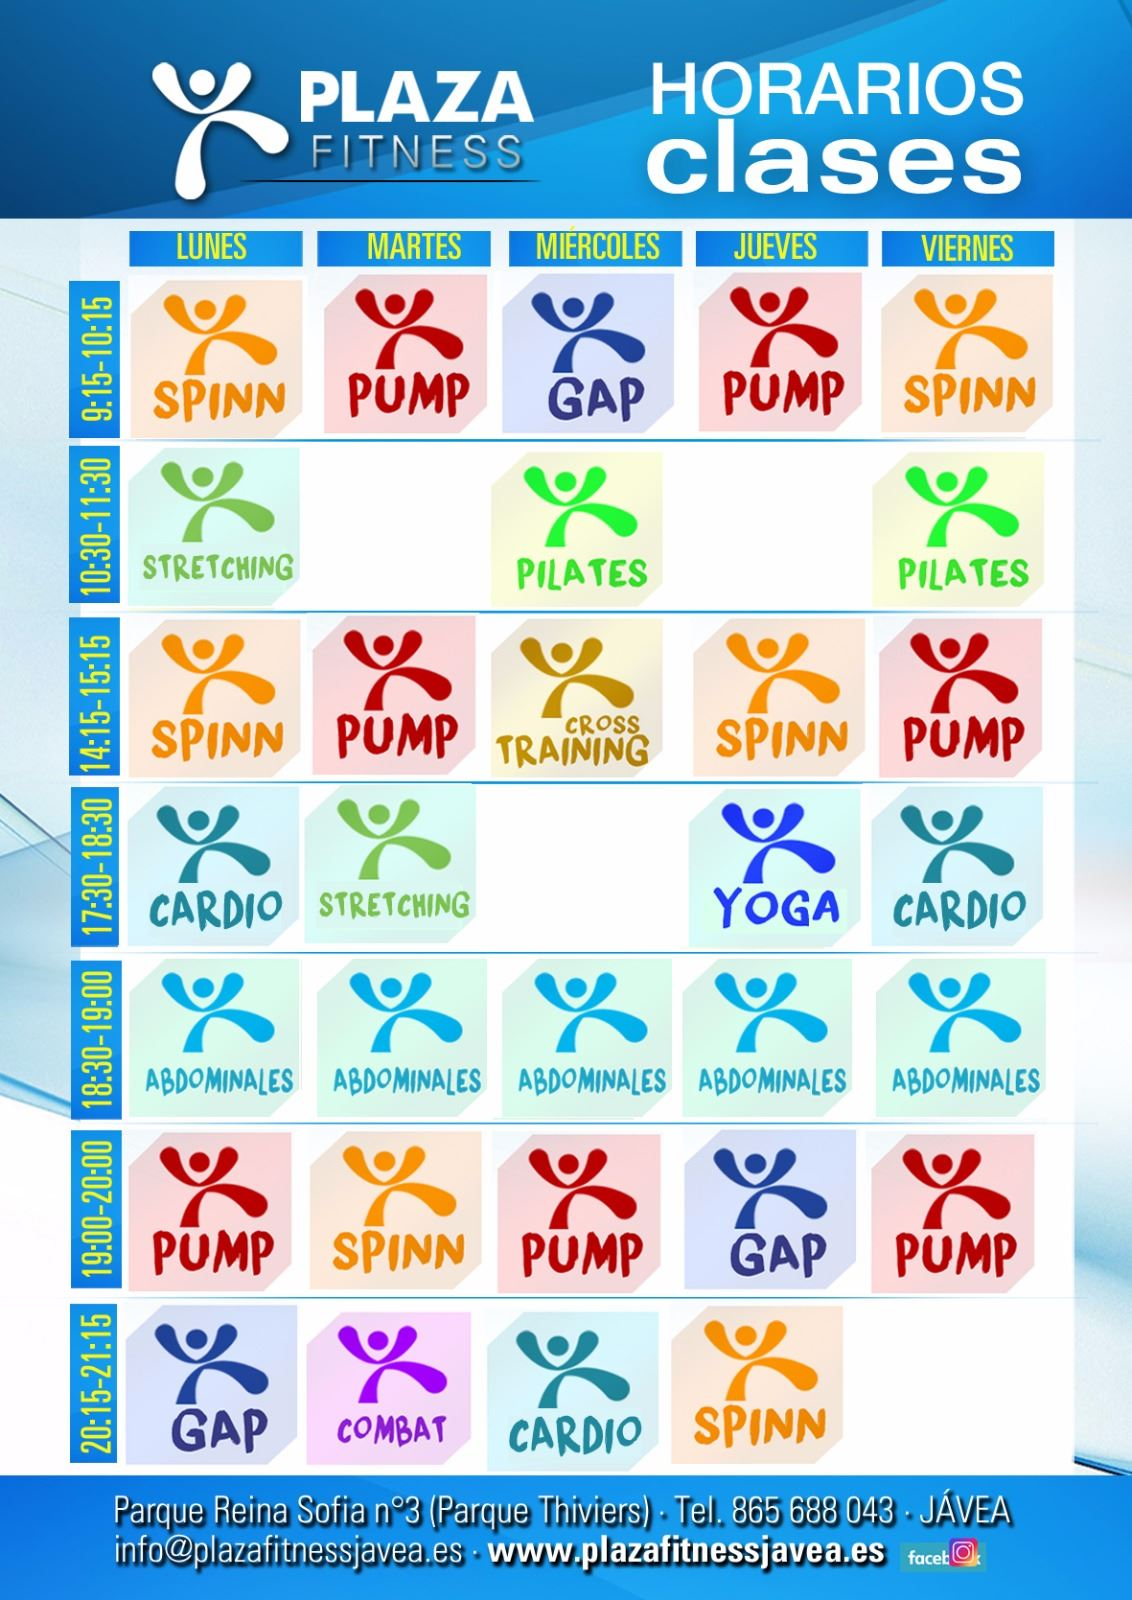 Horarios Clases Plaza Fitness Javea